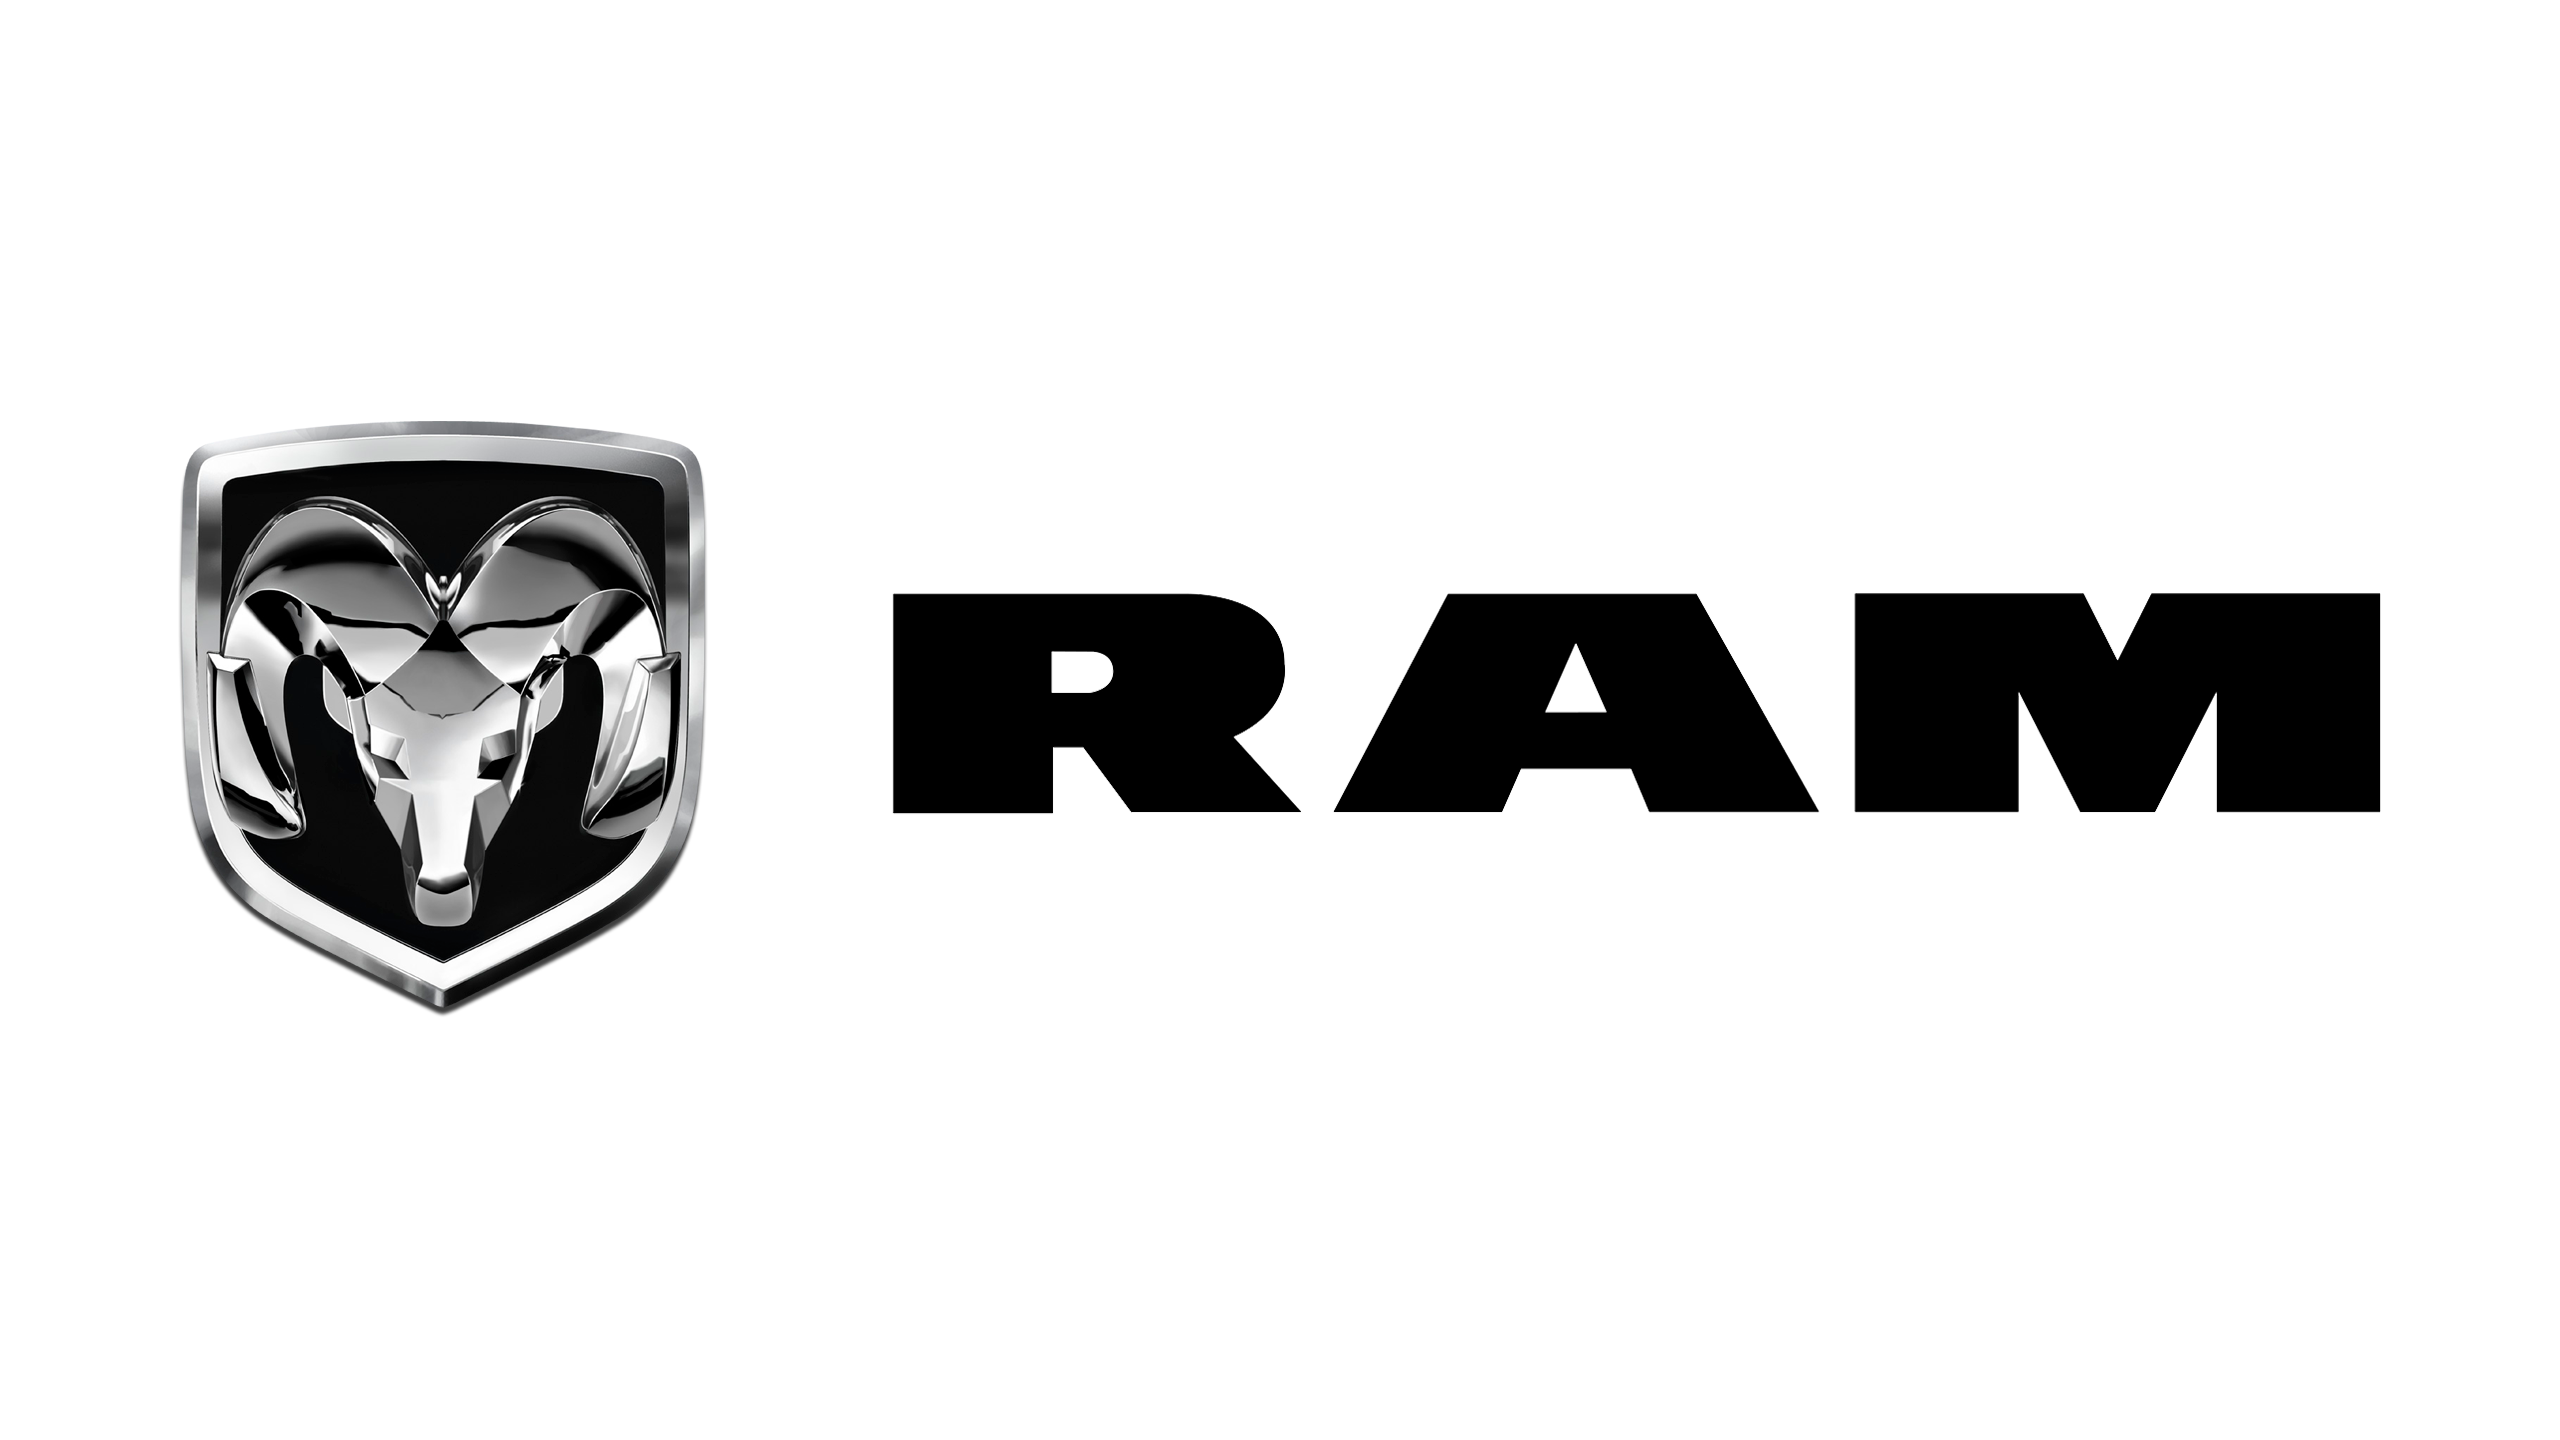 ram trucks logo hd png meaning information. Black Bedroom Furniture Sets. Home Design Ideas